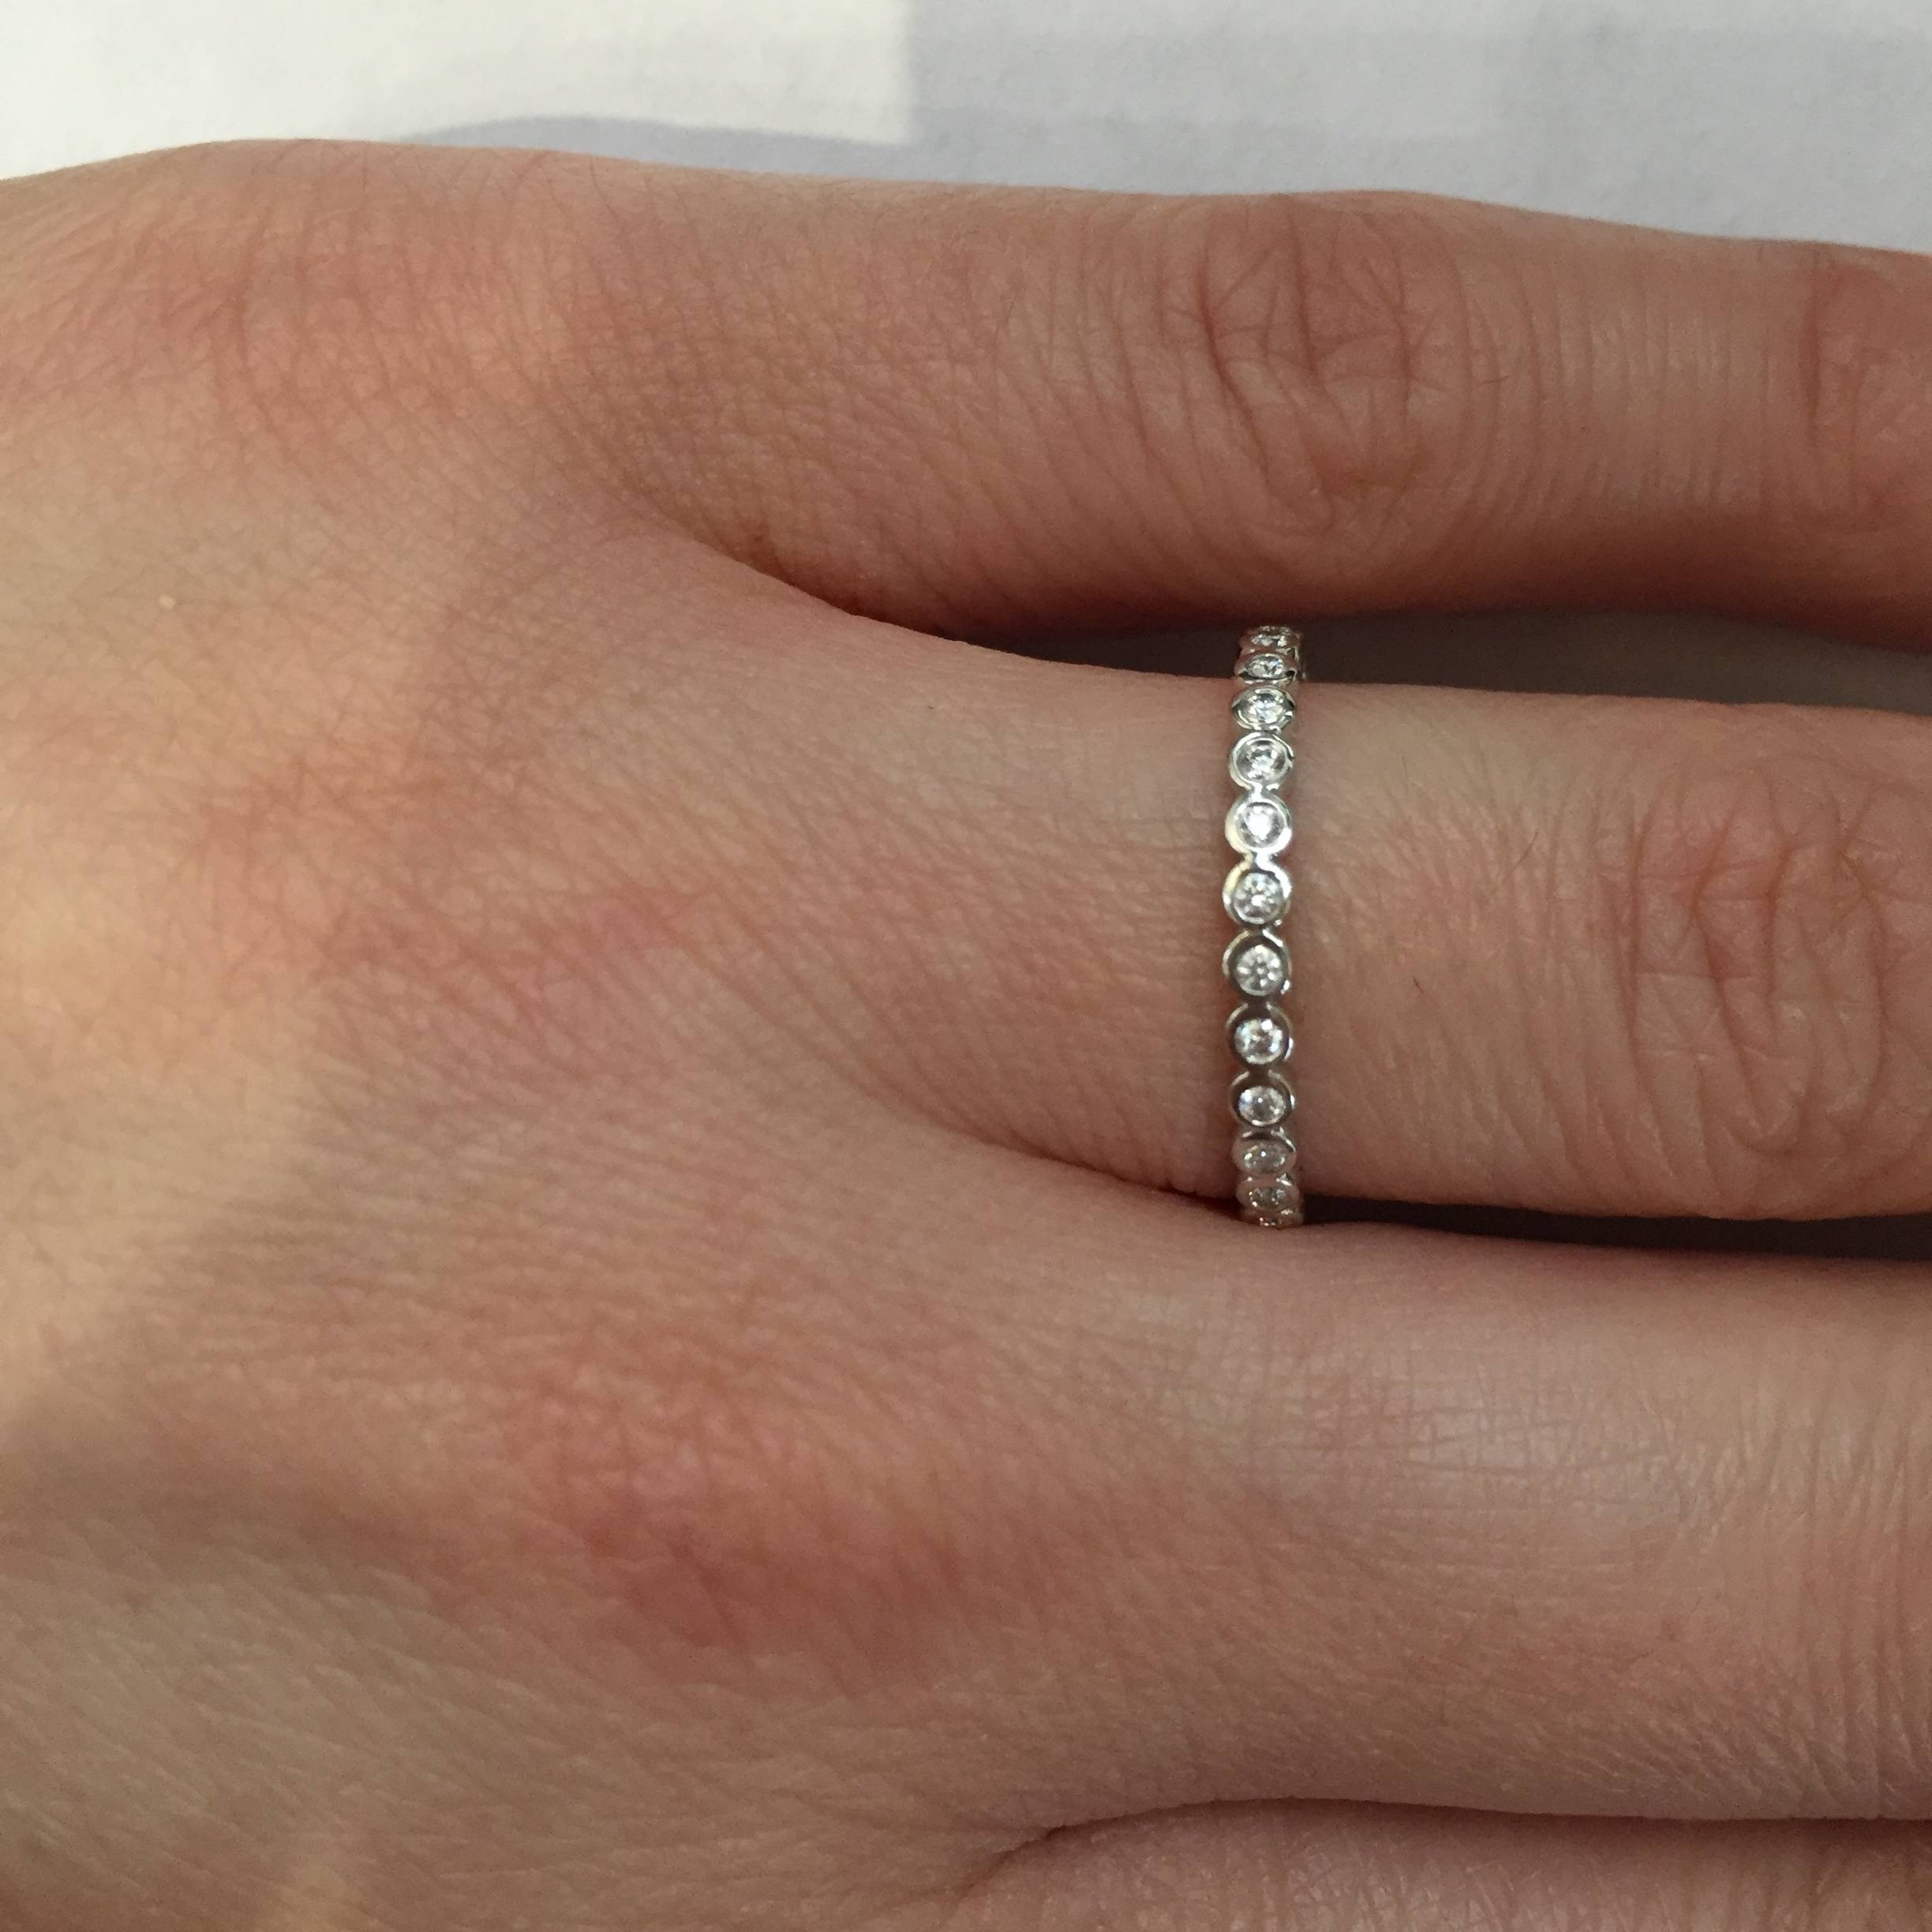 Wedding Rings : Basket Setting Ring Low Profile Wedding Band Flush Regarding 2017 Flush Set Diamond Wedding Bands (View 13 of 15)